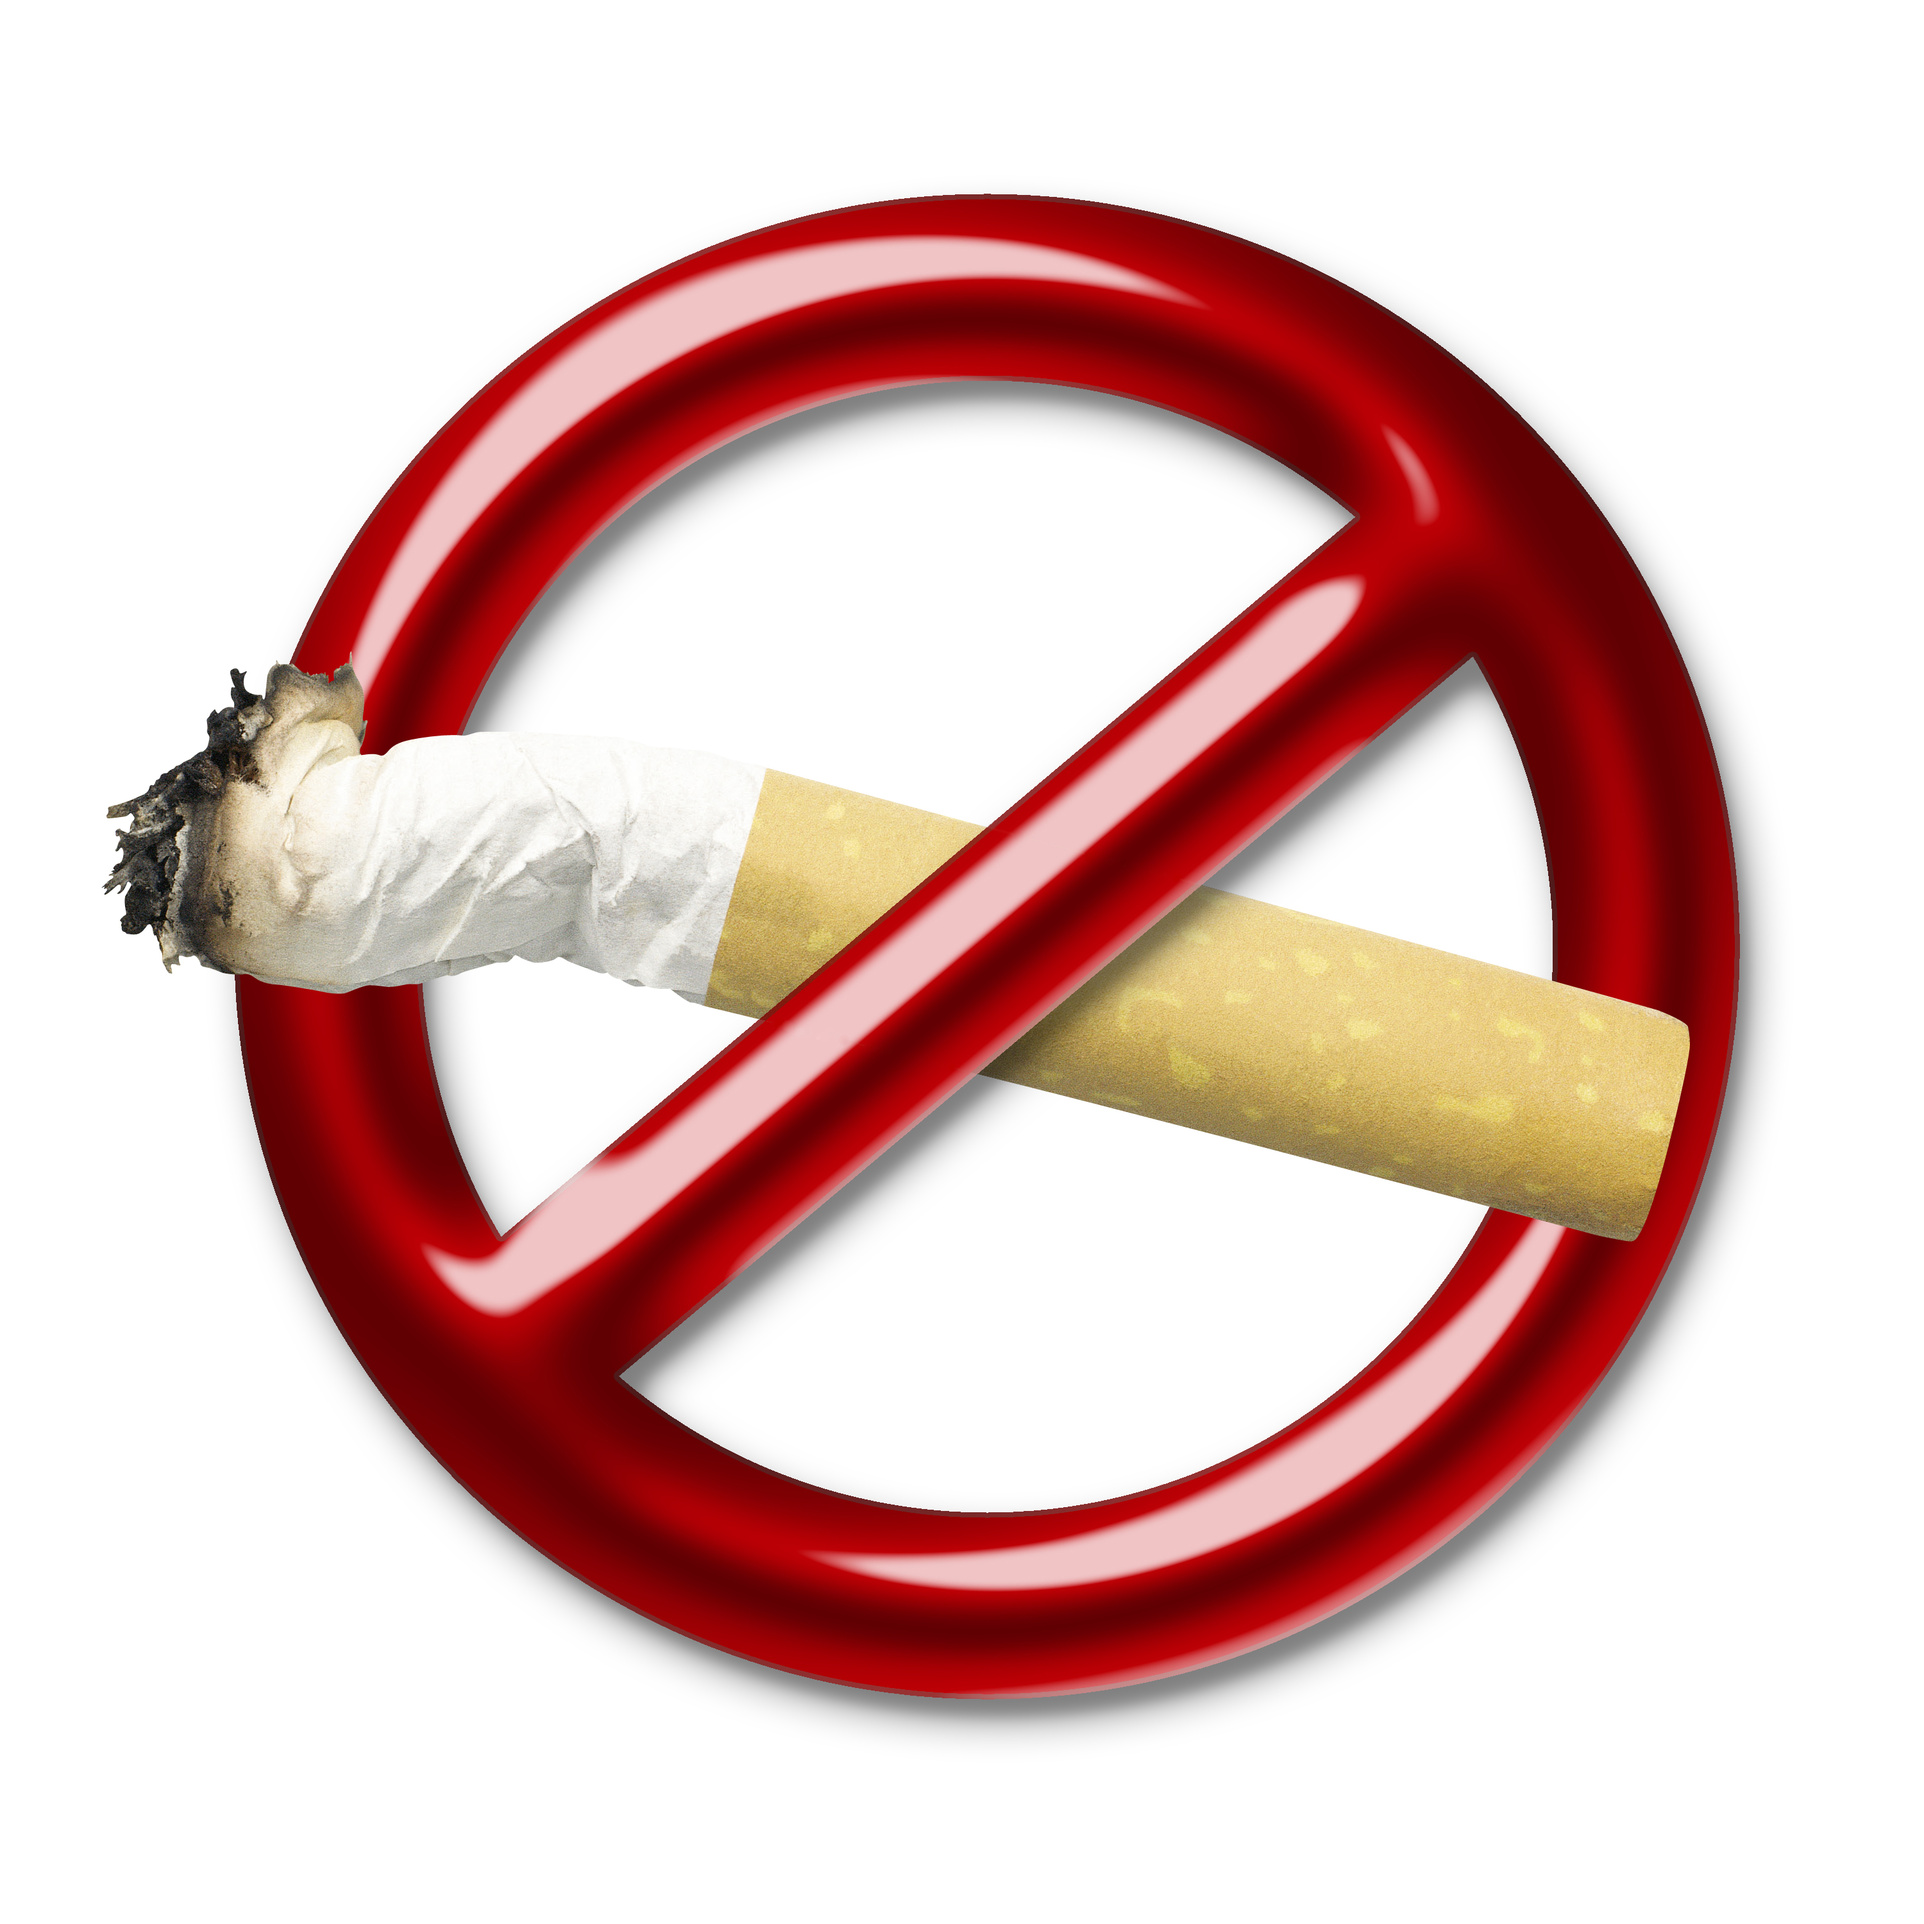 stop smoking sign   clipart best